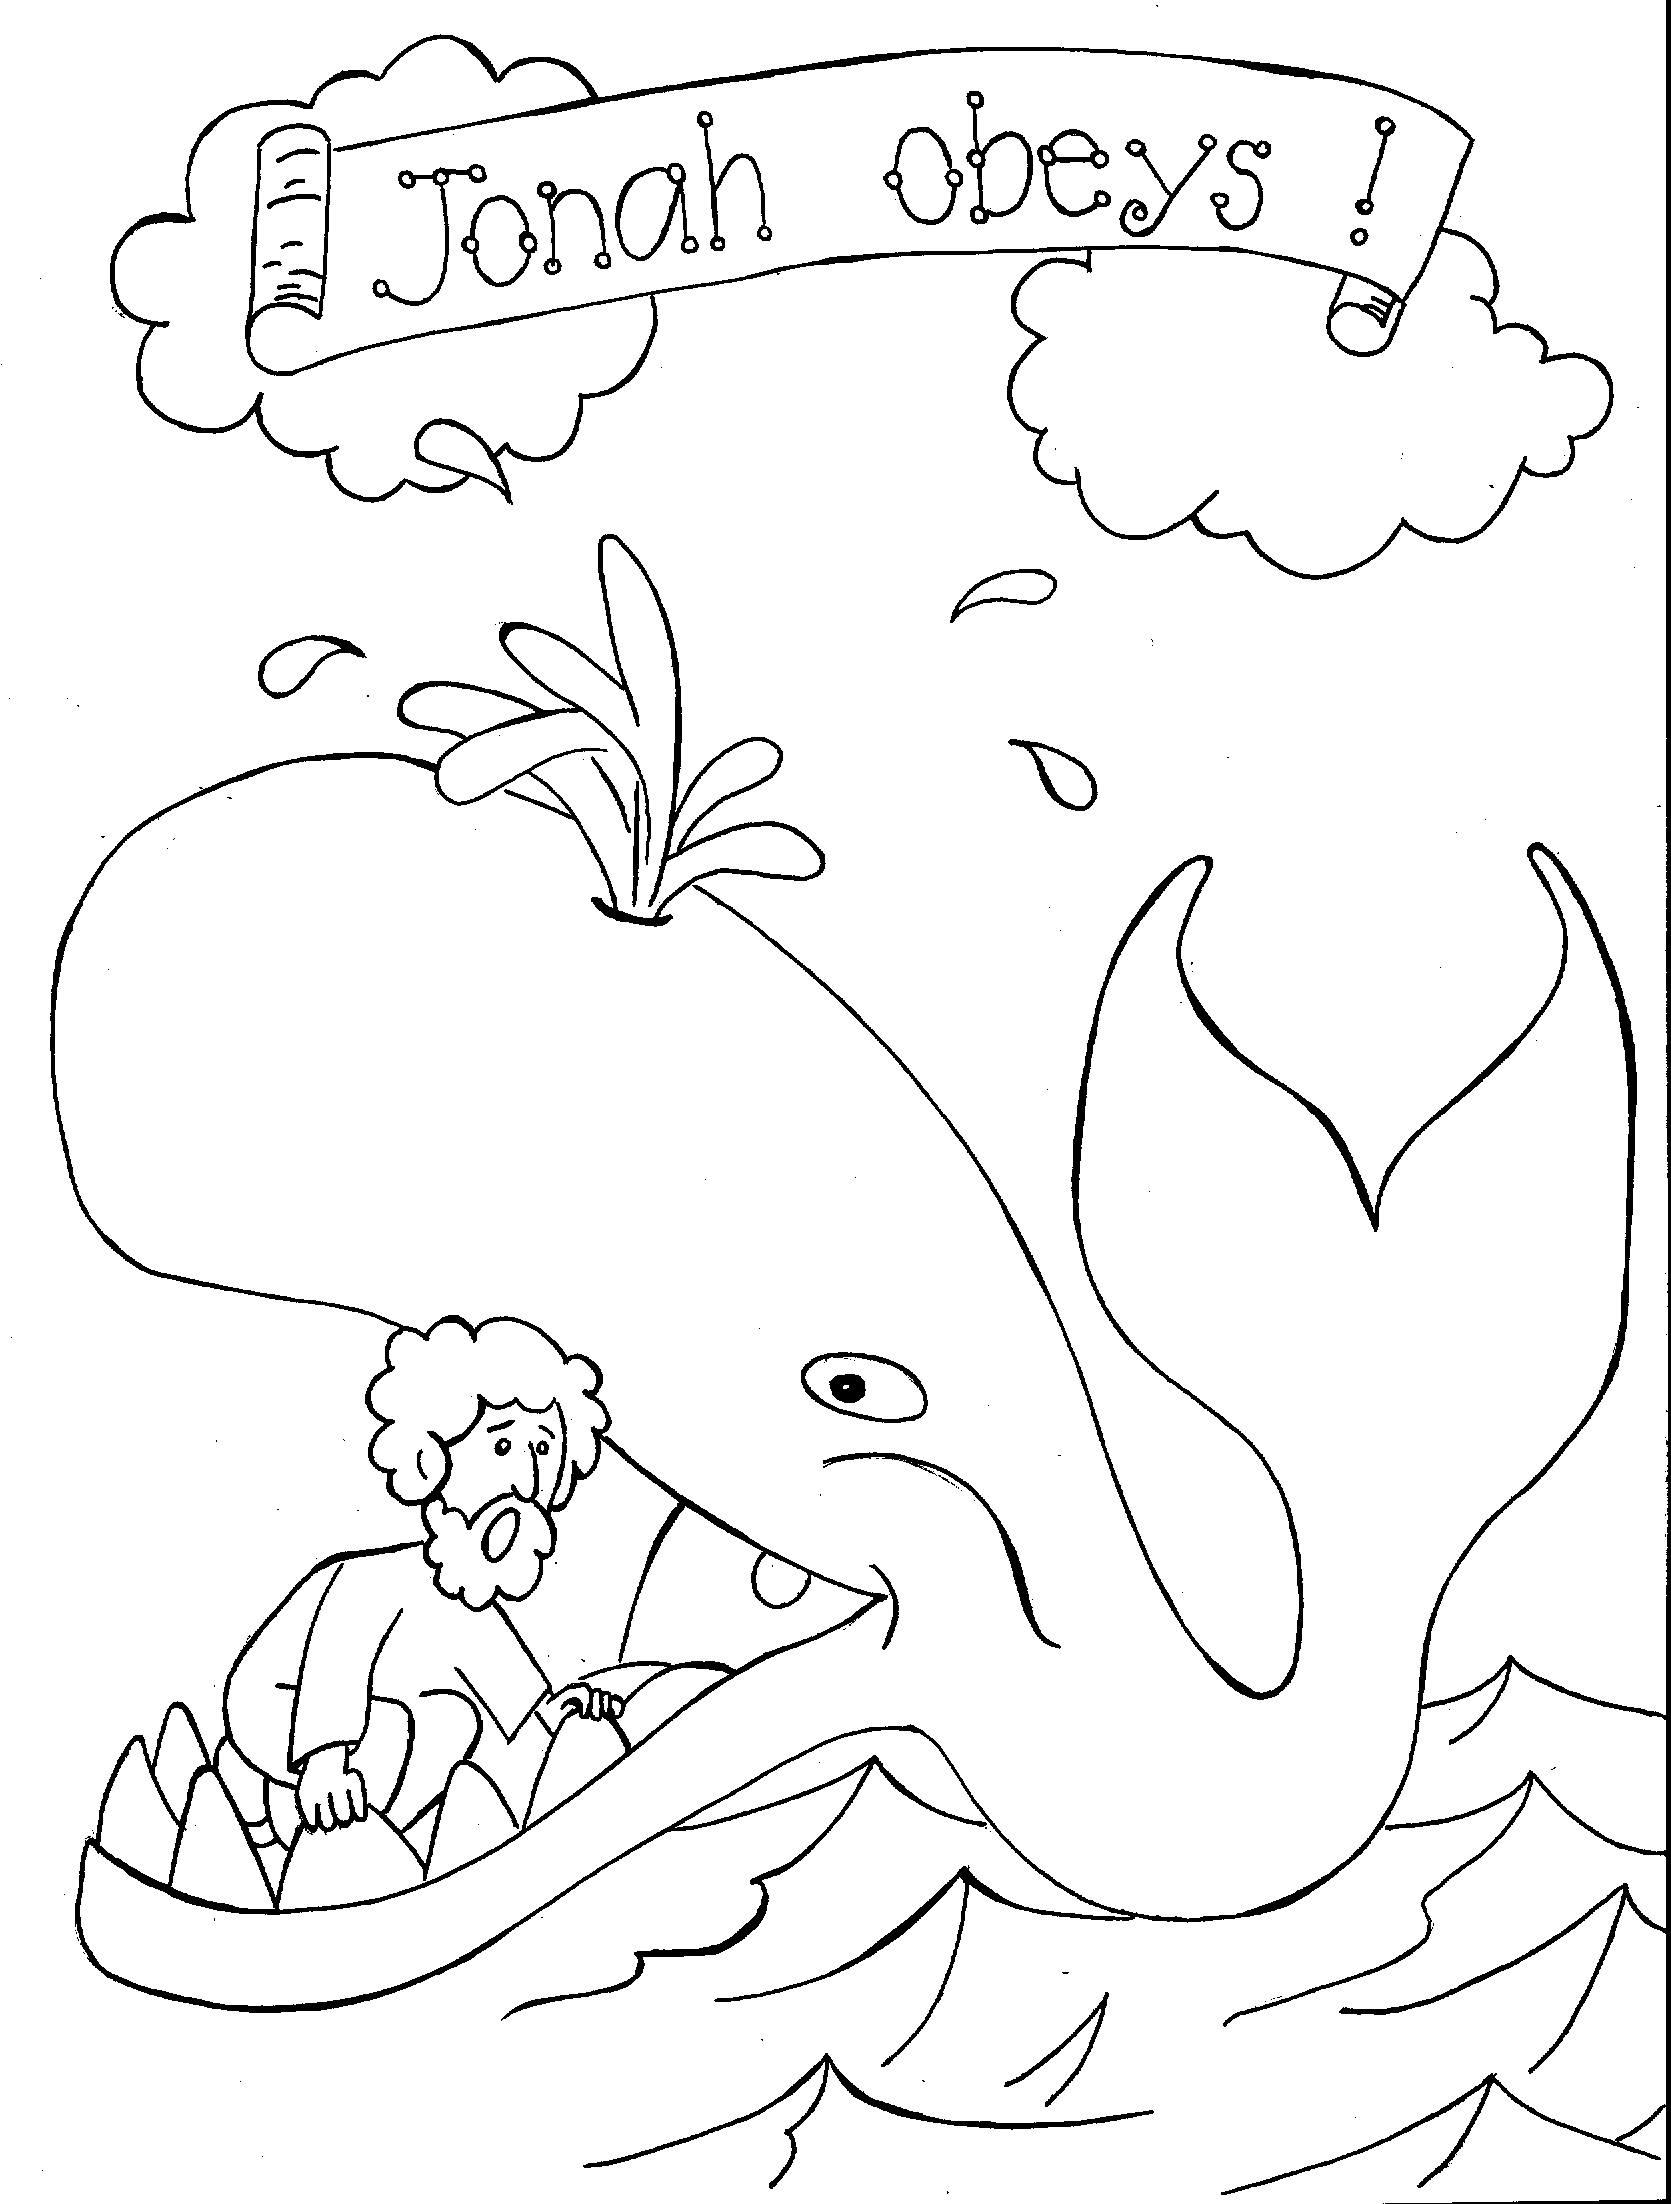 Jonah-and-the-whale-coloring-page-3 | Craft Ideas | Sunday